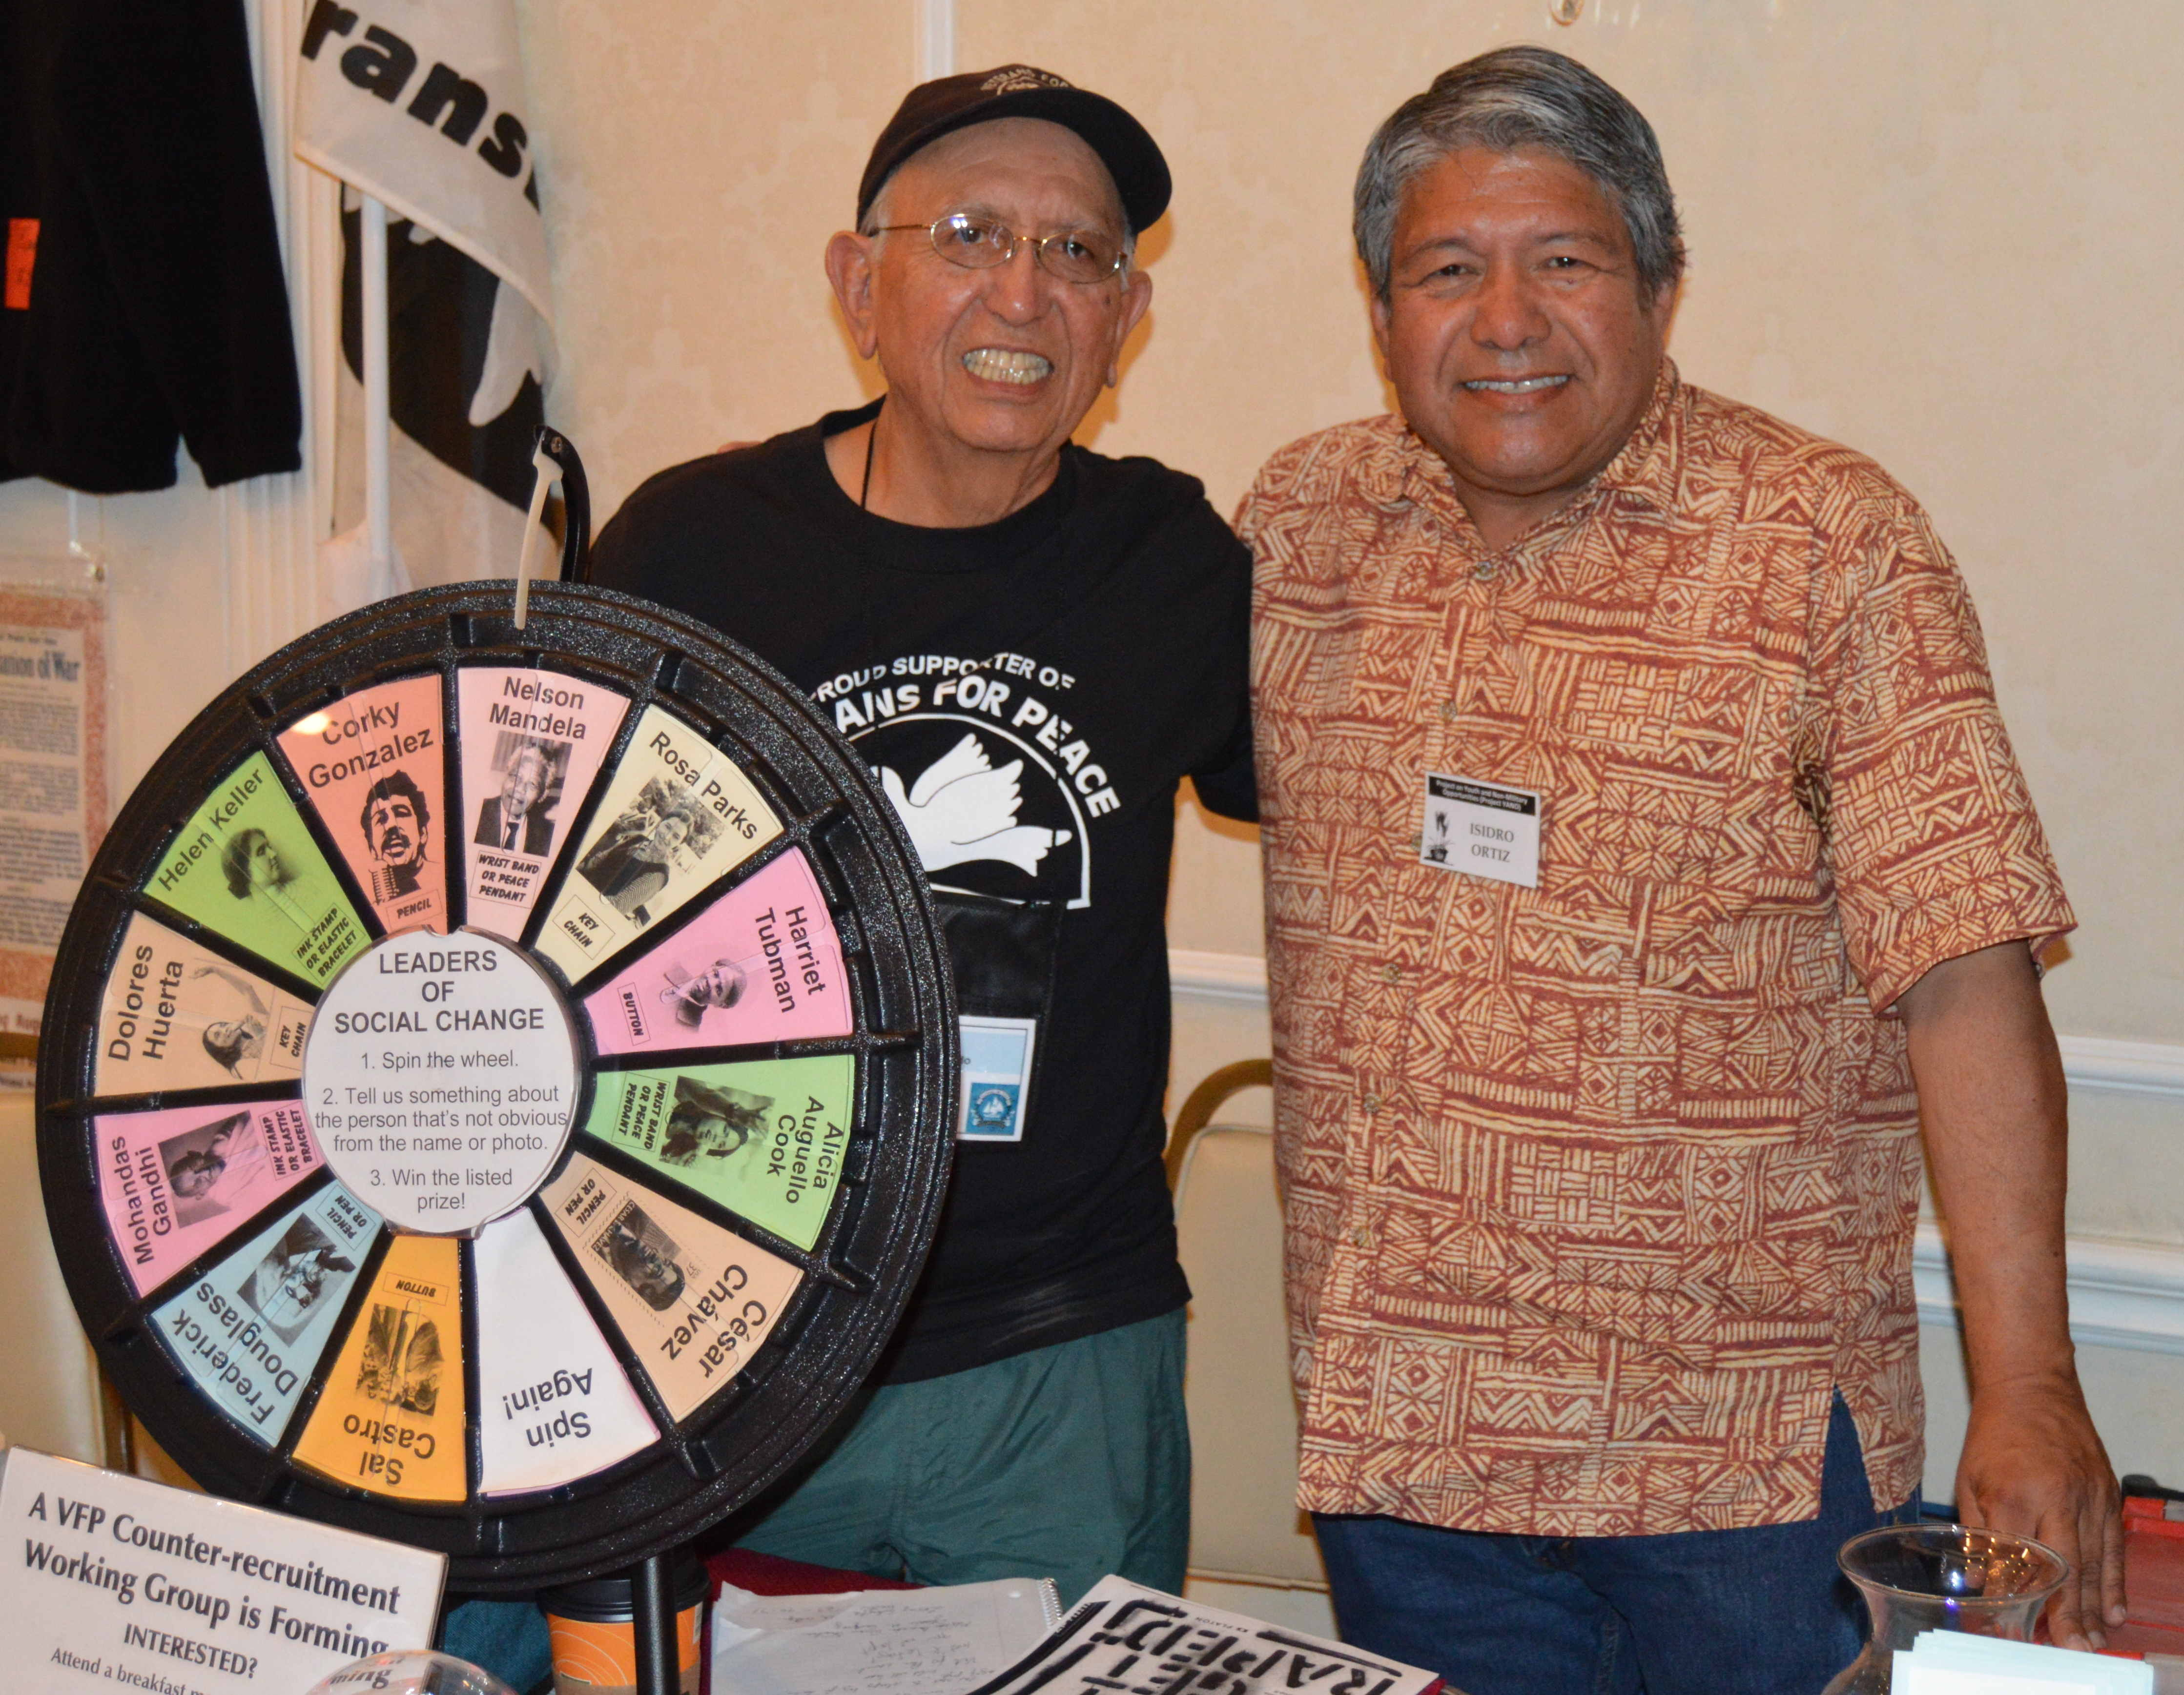 Gilberto (left) with Isidro Ortiz at the Veterans For Peace convention, San Diego, CA, August 8, 2015. Photo: Project YANO.